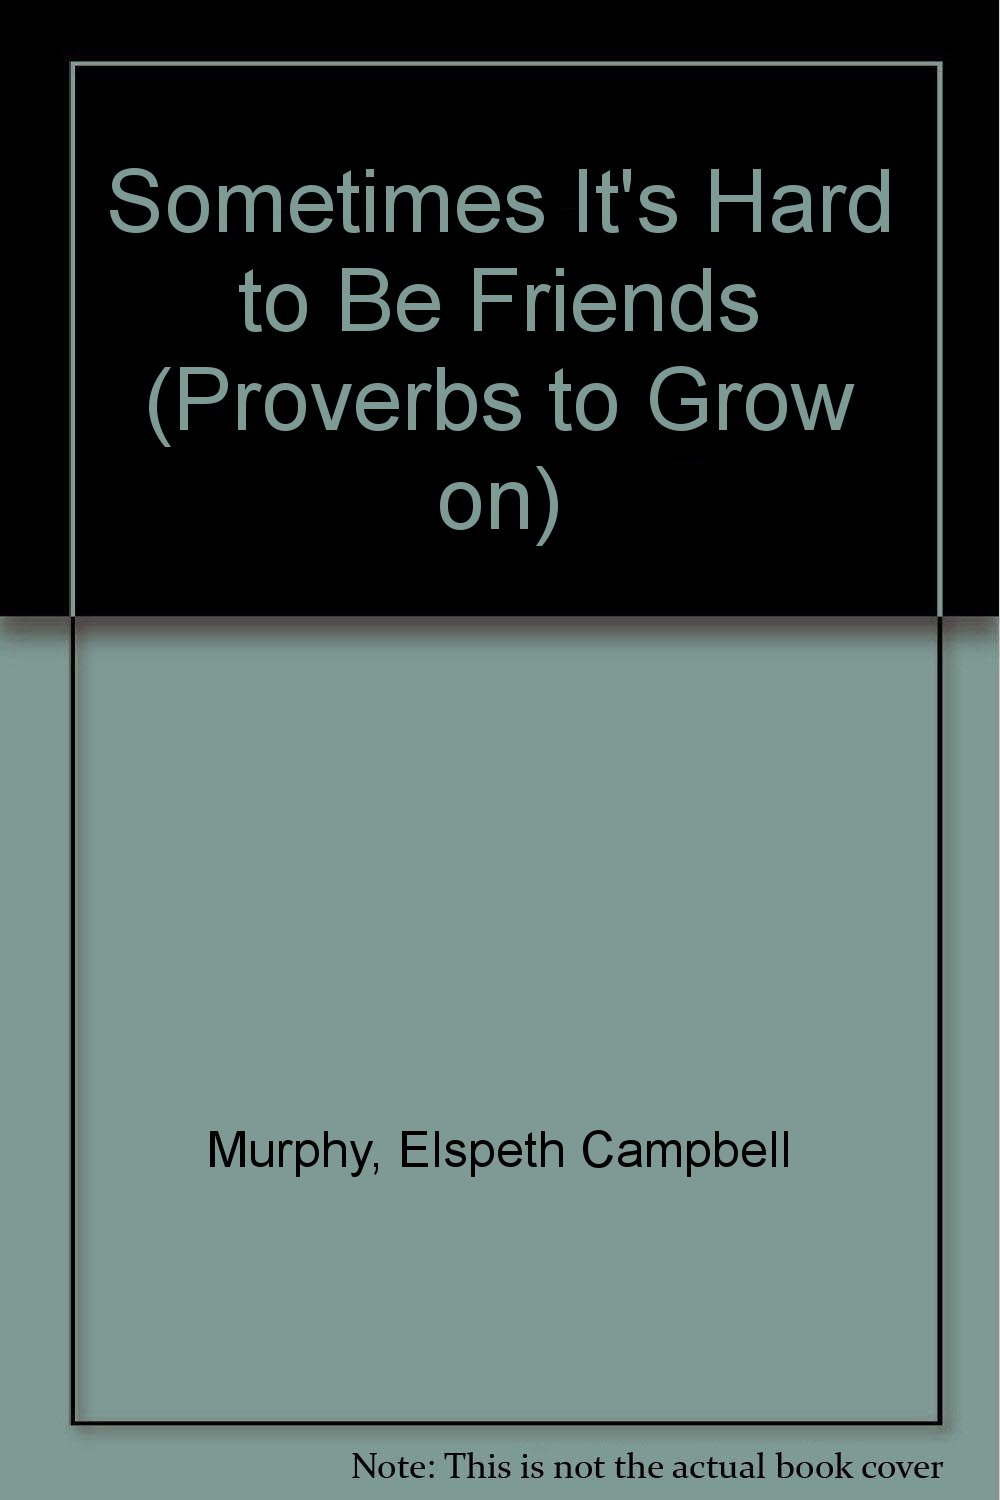 sometimes-it-s-hard-to-be-friends-proverbs-to-grow-on